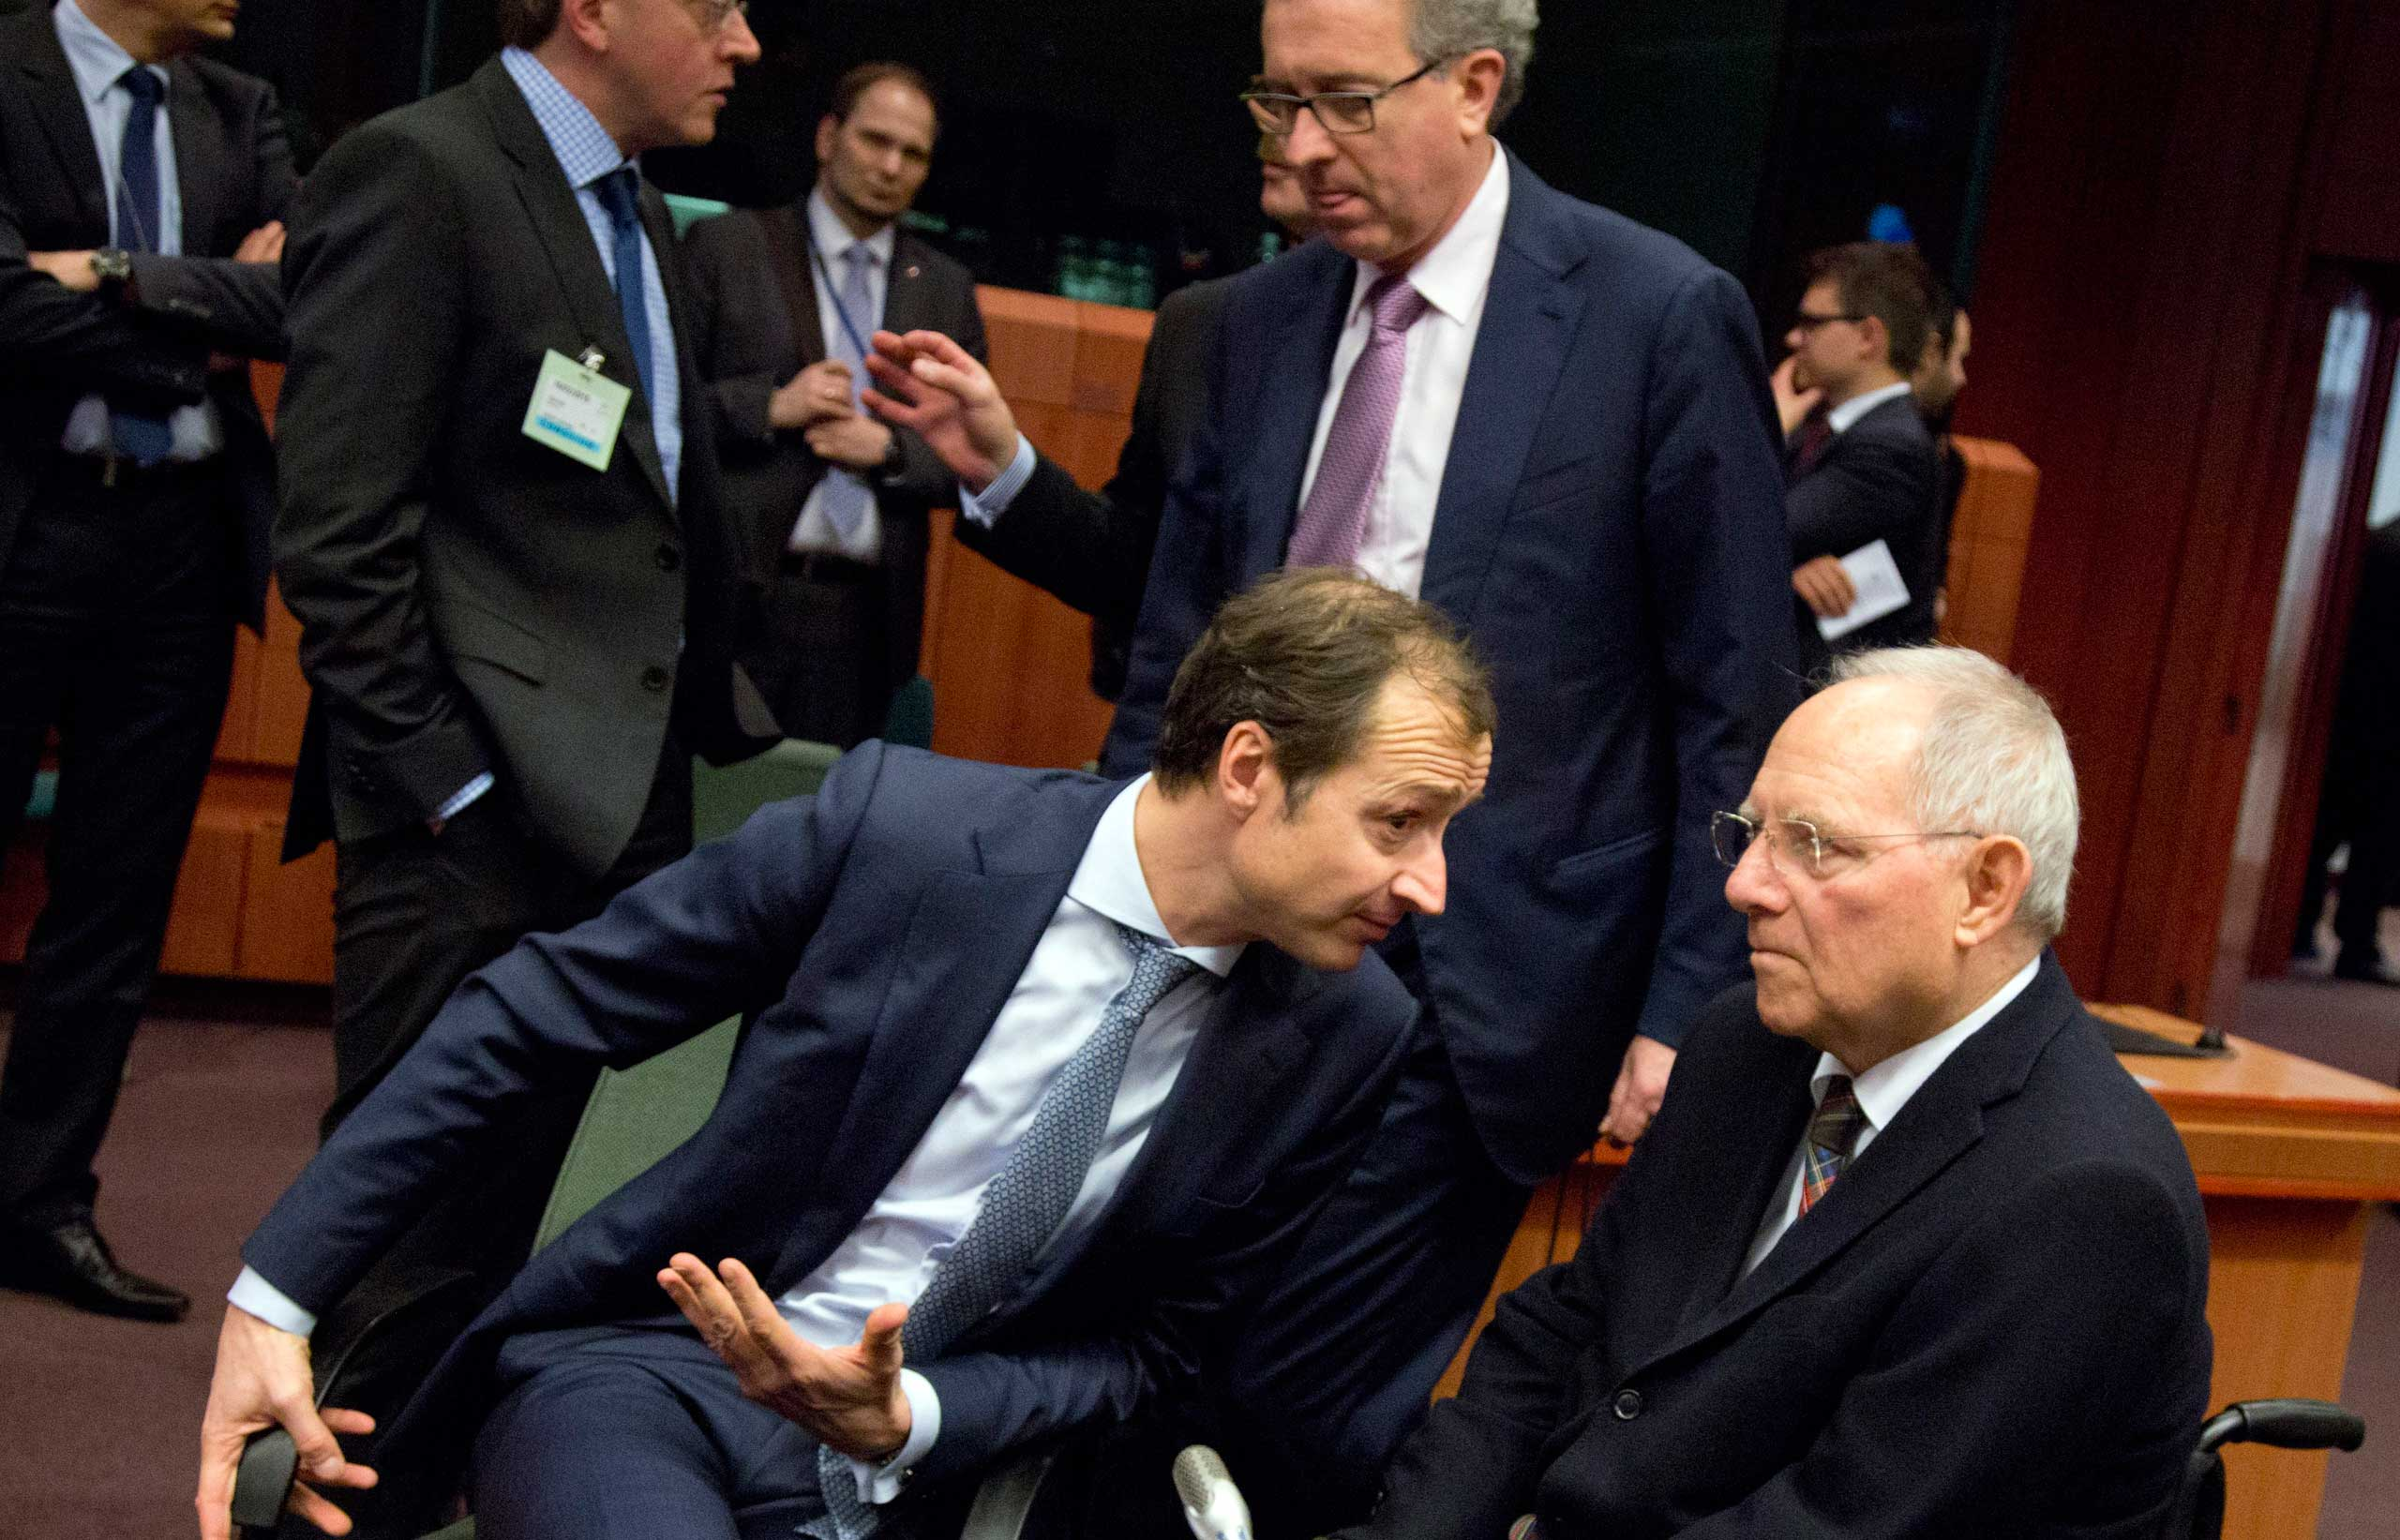 German Finance Minister Wolfgang Schaeuble, right, speaks colleagues during a meeting of Eurogroup finance ministers at the EU Council building in Brussels on Monday, Feb. 16, 2015.